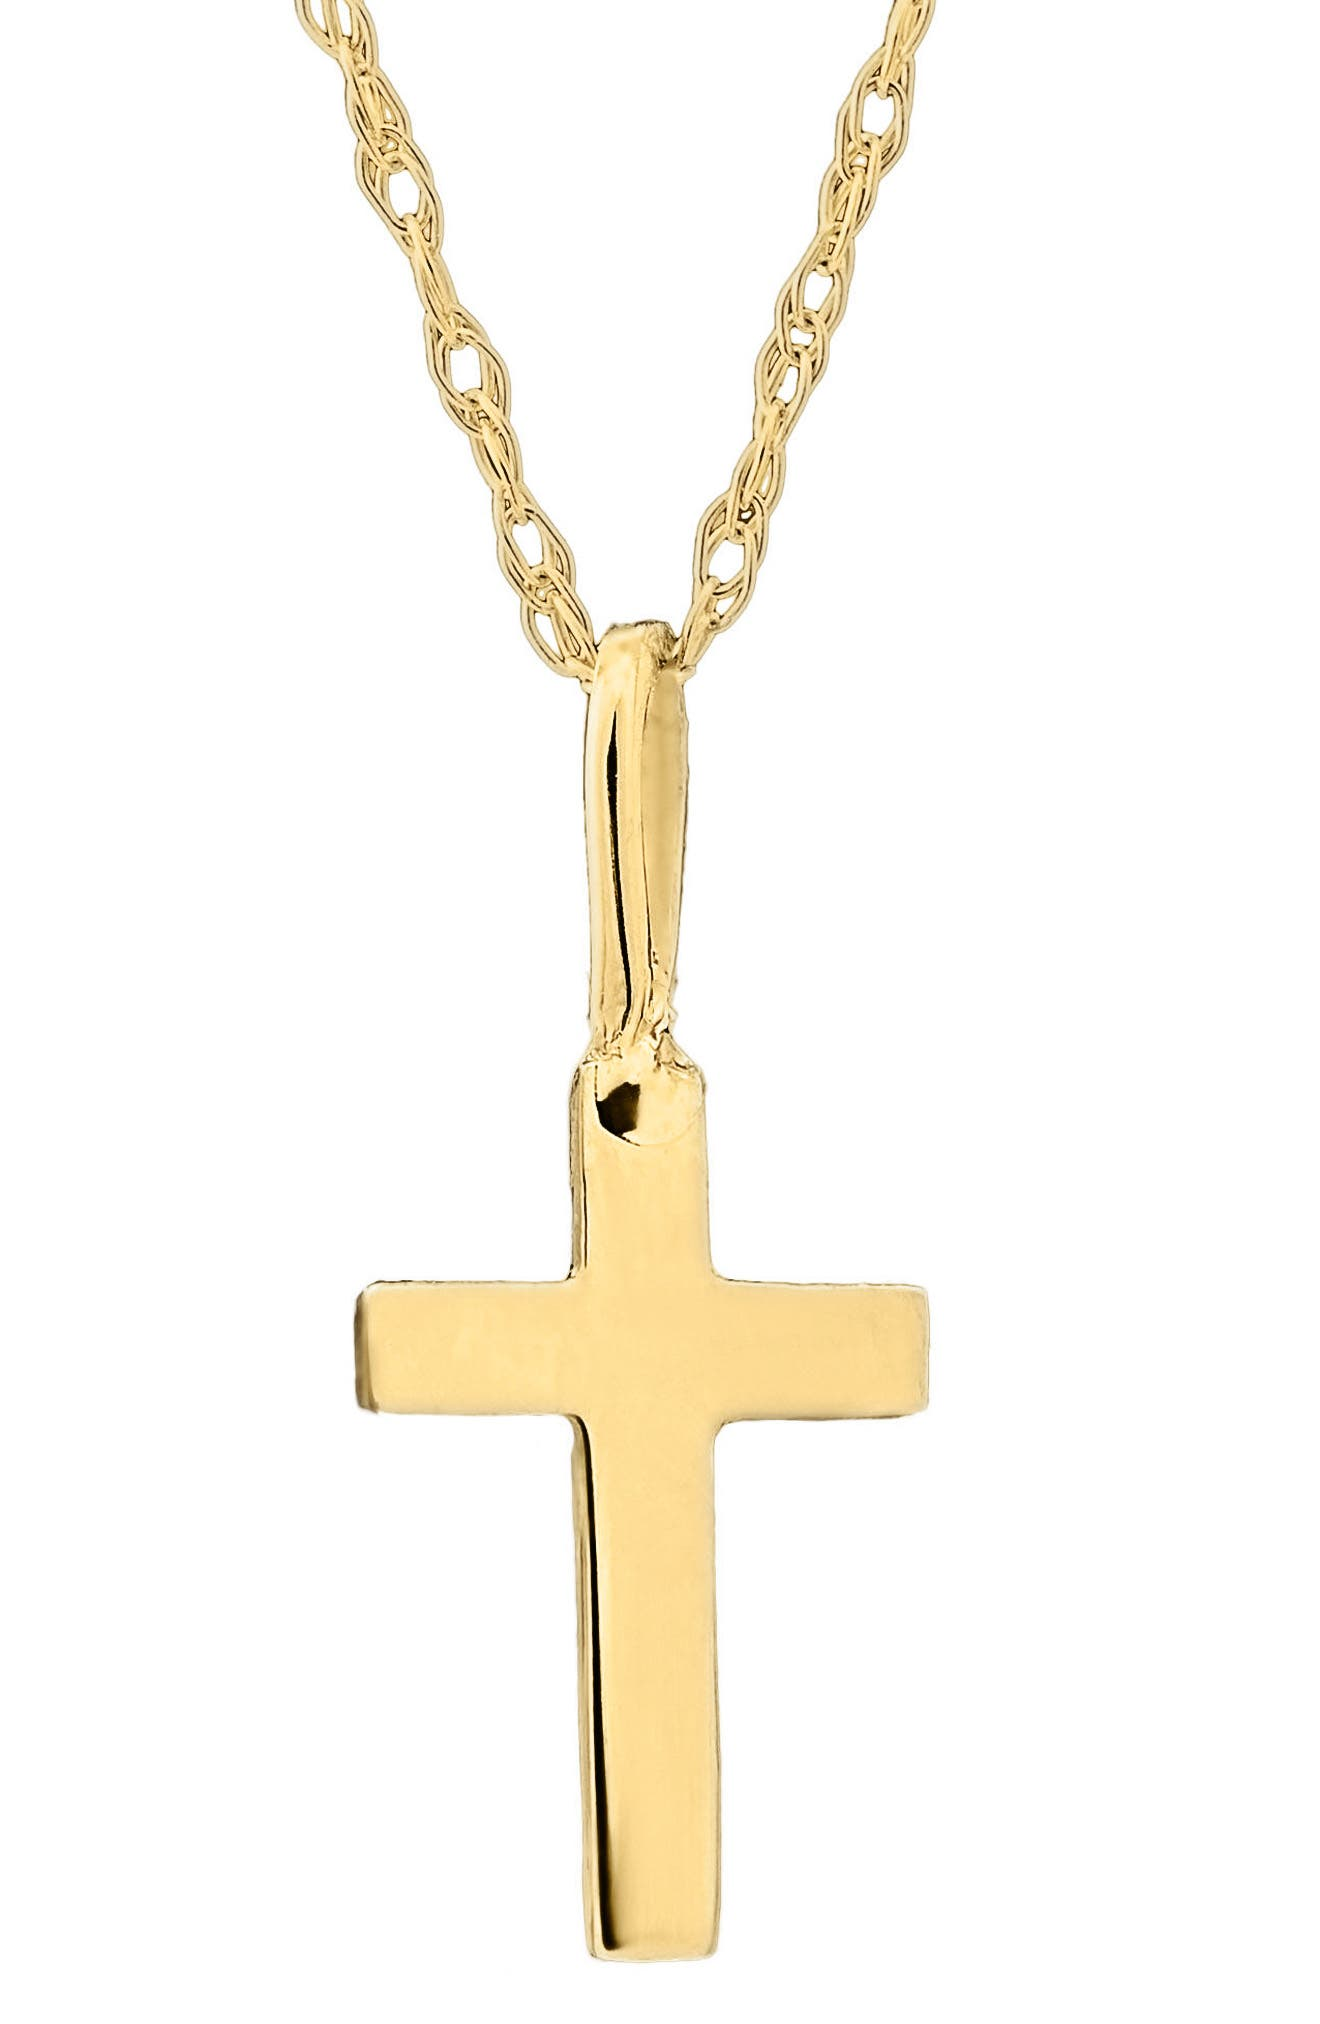 Silver ROSTIVO Cross Necklace for Women Men Boys and Girls Dainty Cross Necklace